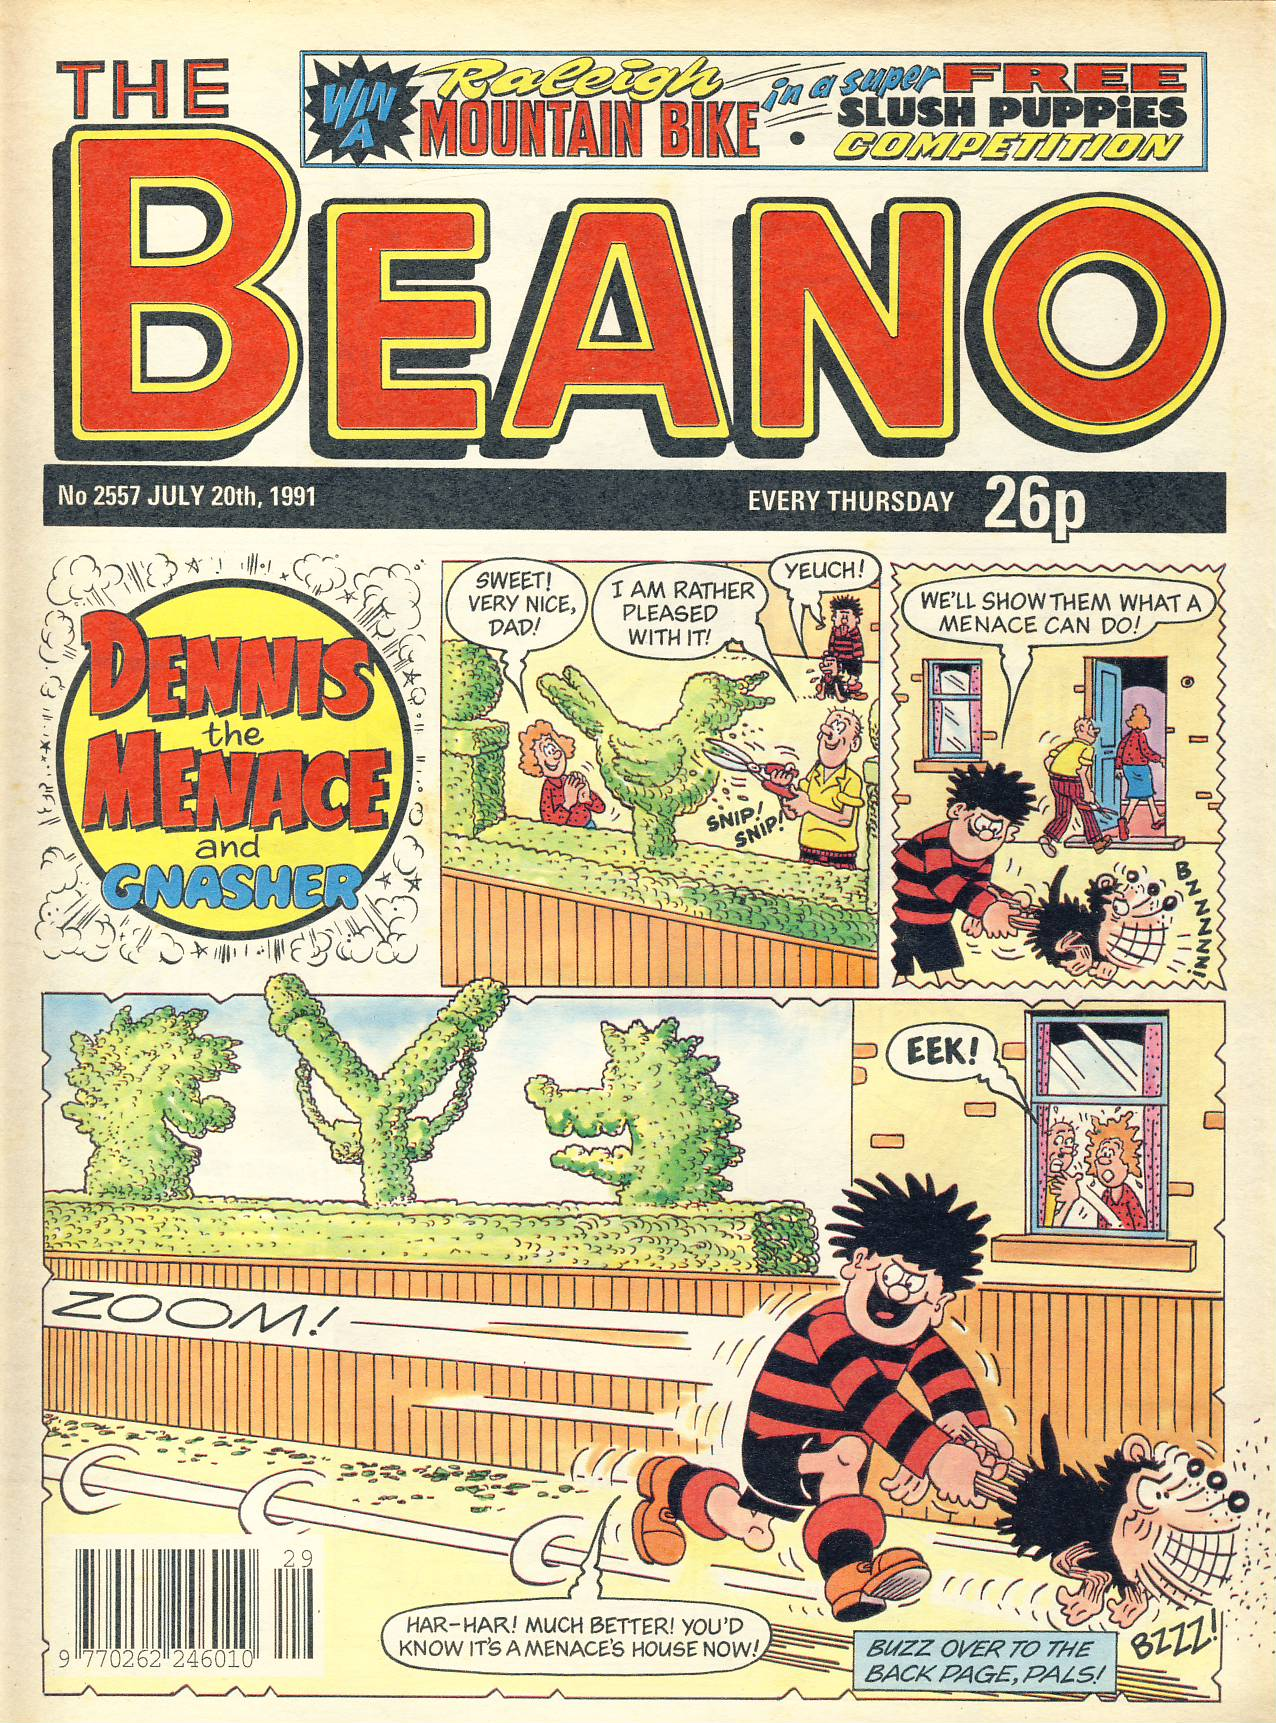 1991 July 20th BEANO vintage comic Good Gift Christmas Present Birthday Anniversary ref321a pre-owned item in good read condition.